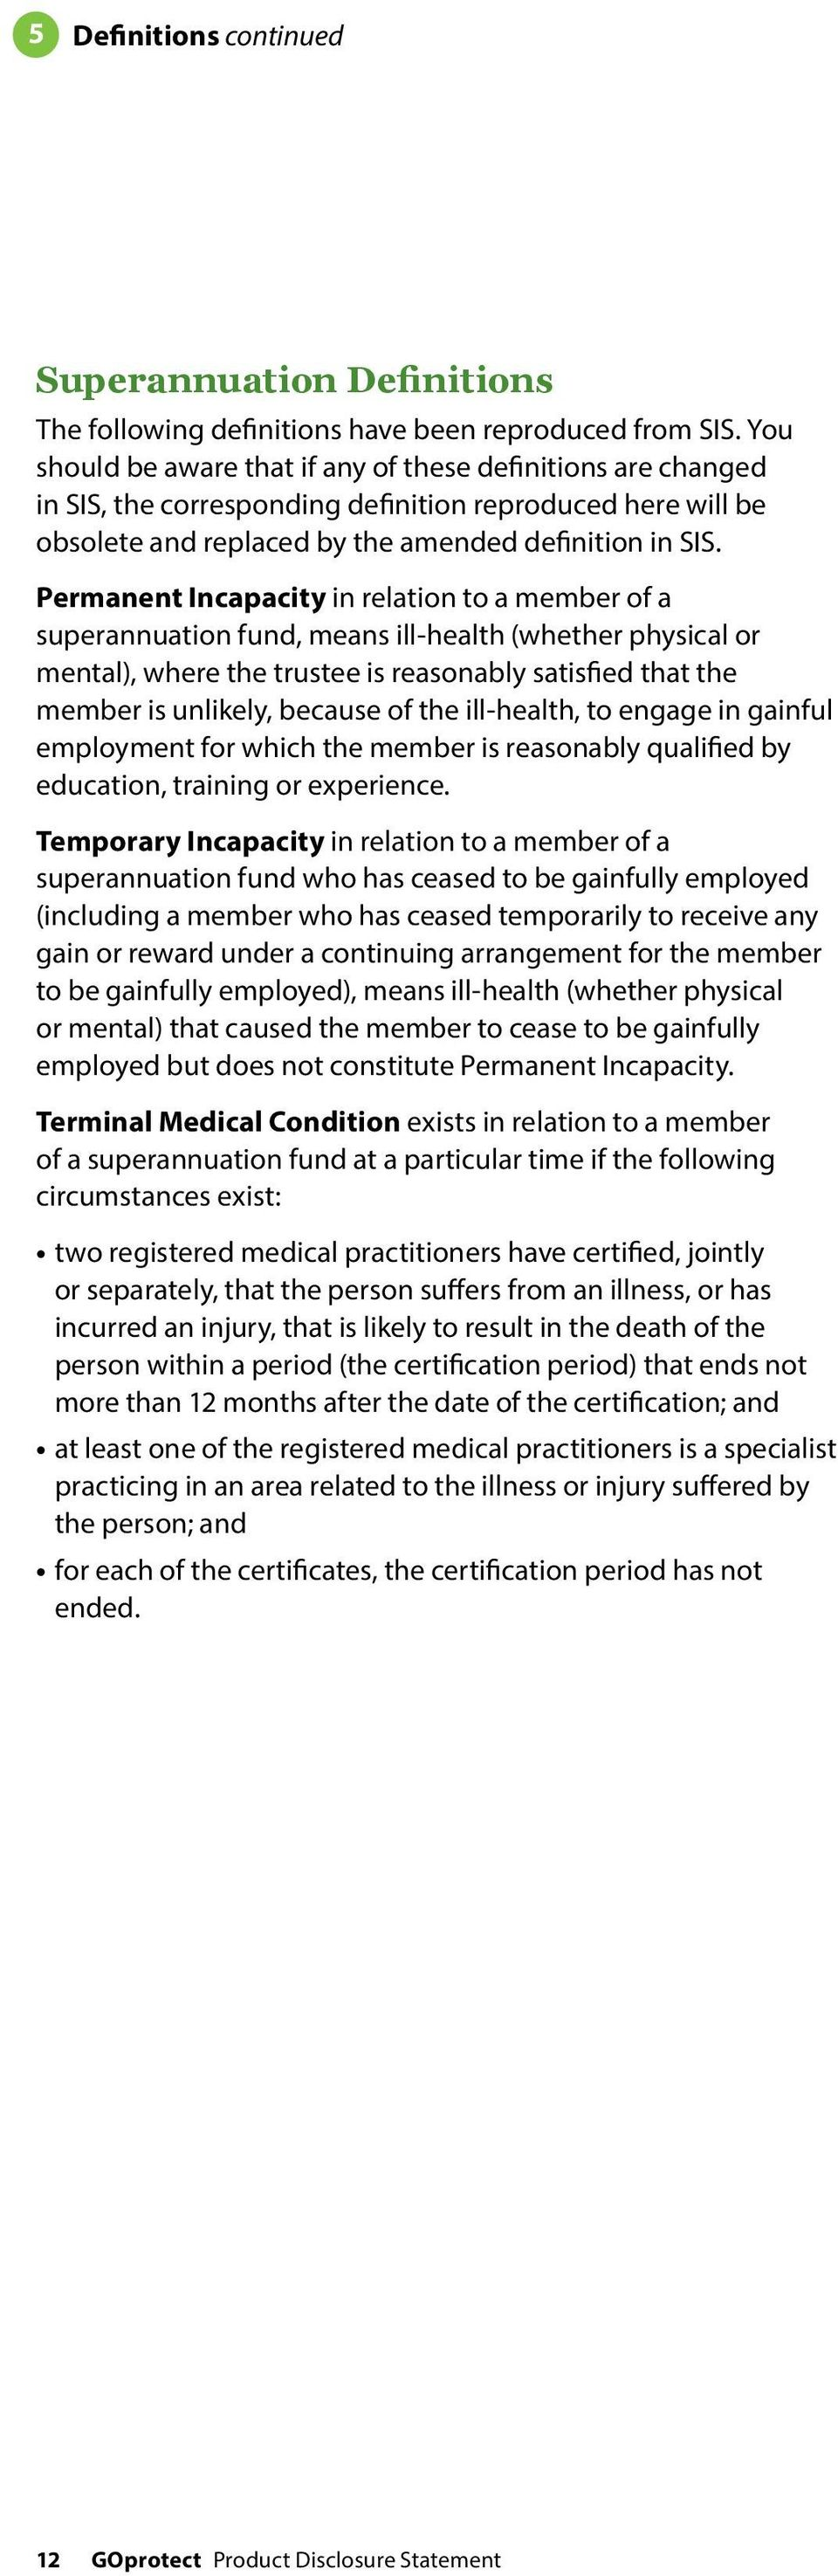 Permanent Incapacity in relation to a member of a superannuation fund, means ill-health (whether physical or mental), where the trustee is reasonably satisfied that the member is unlikely, because of